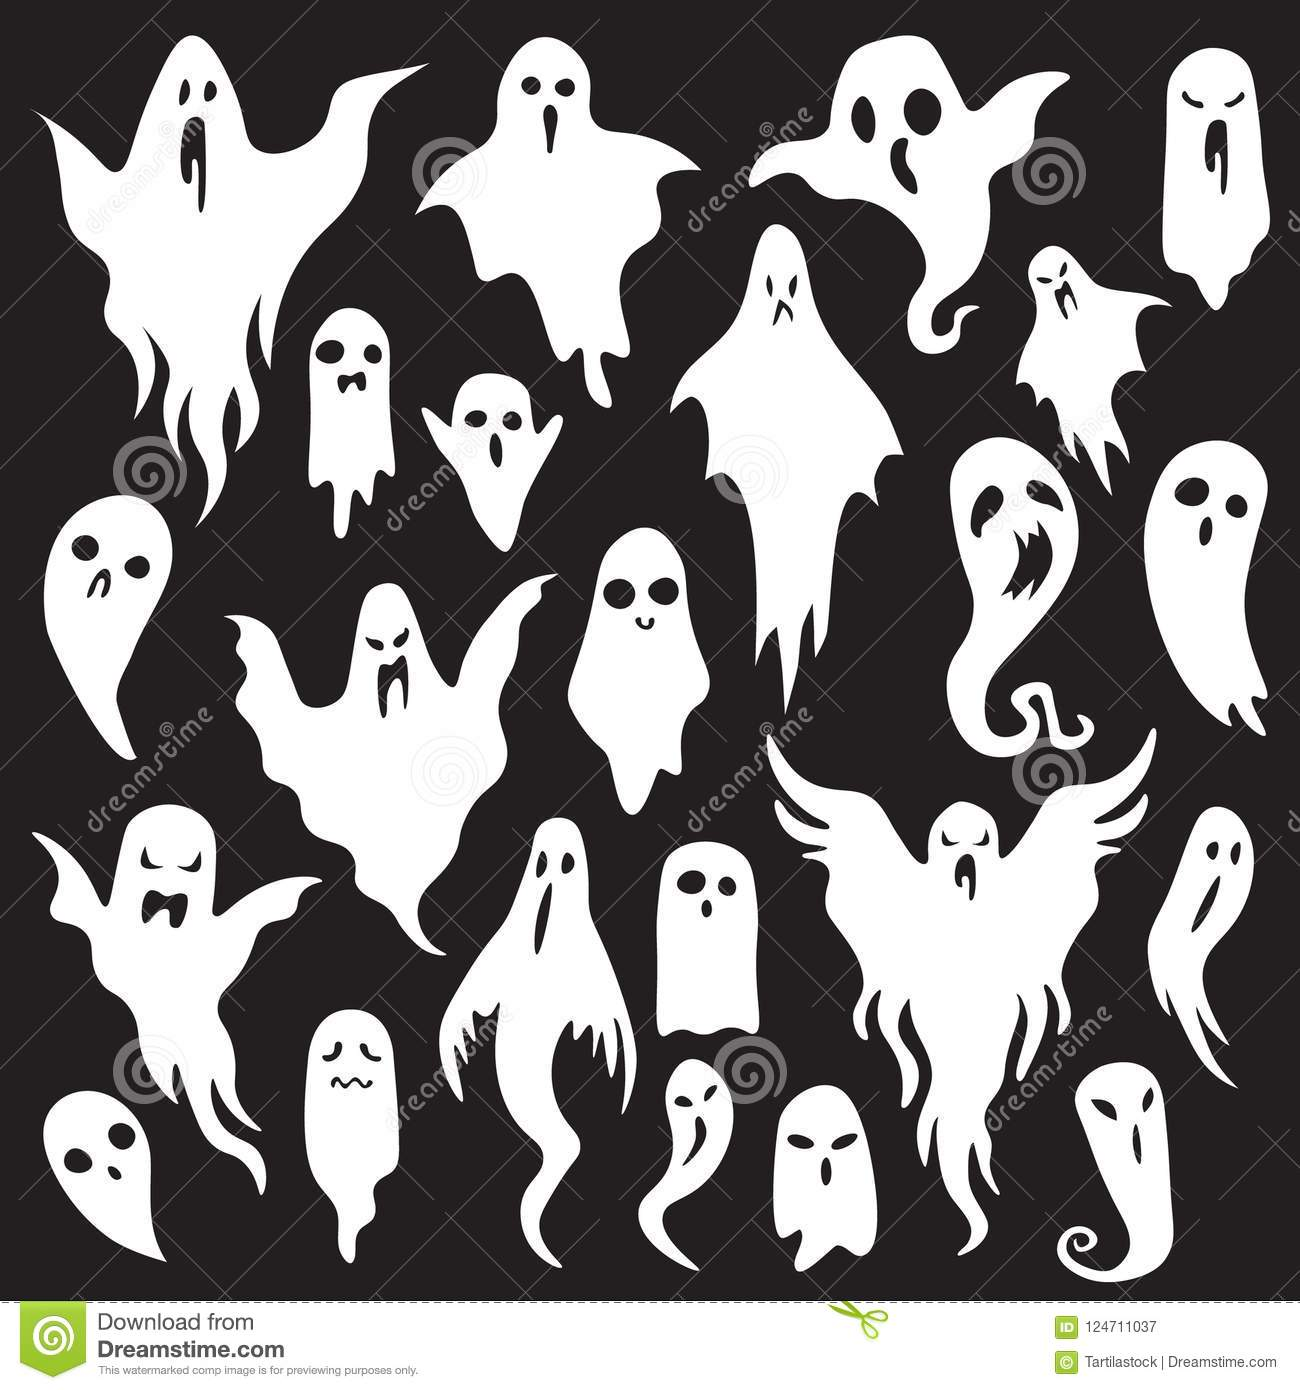 Template Halloween Ghost Scary Face Pictures | www.picturesboss.com